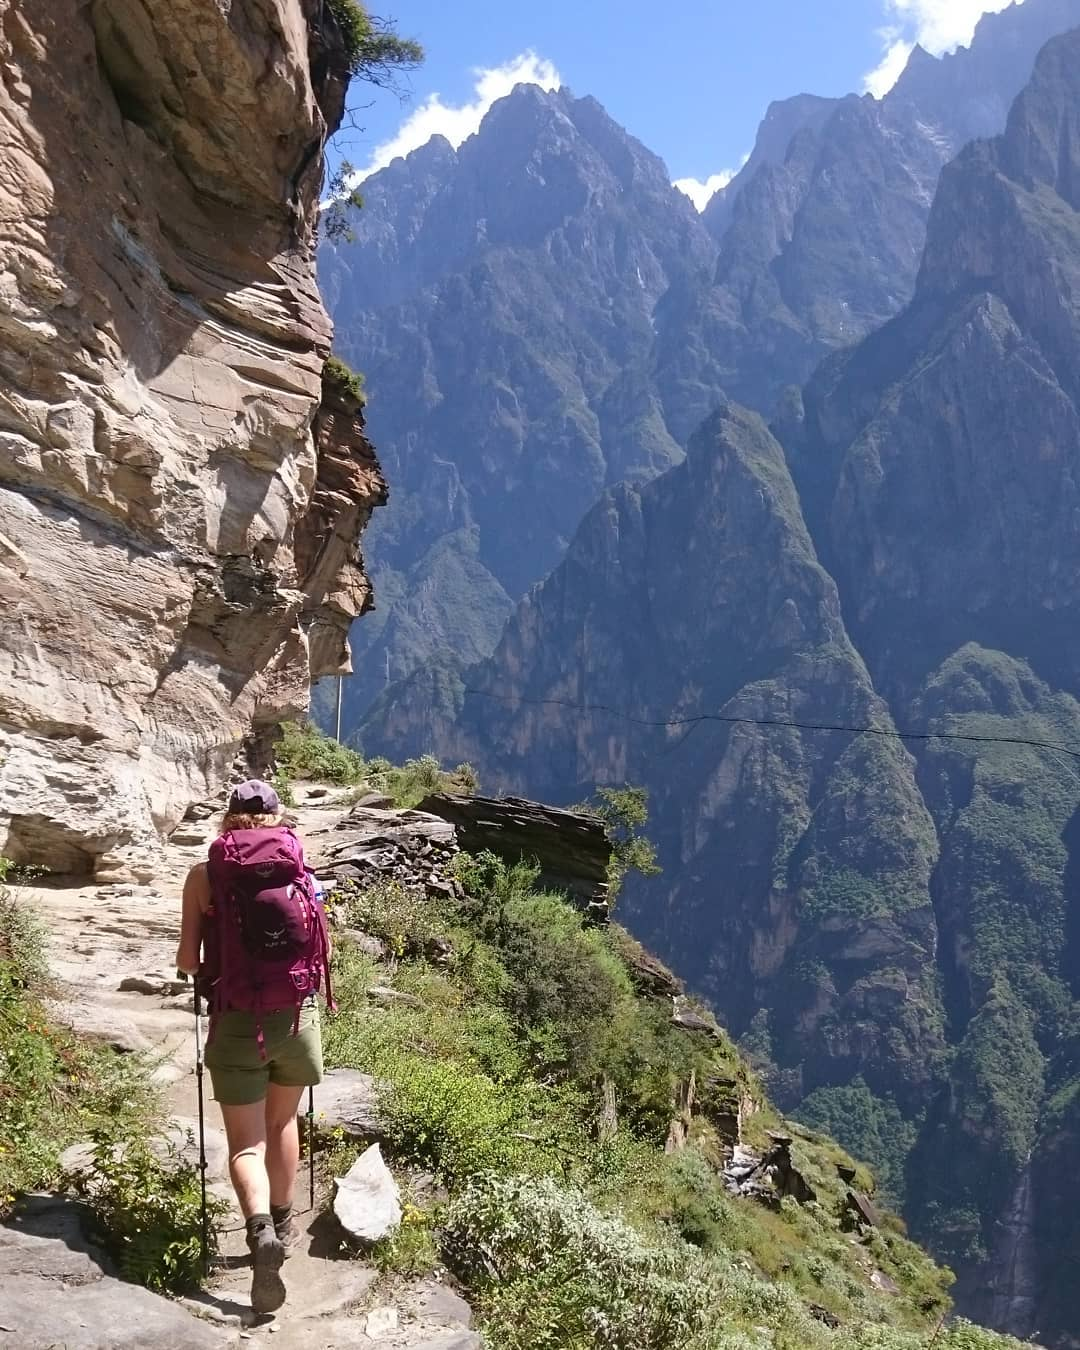 Cost Of Car Insurance >> LiJiang Tiger Leaping Gorge - China ChengDu Tours, Chengdu ...